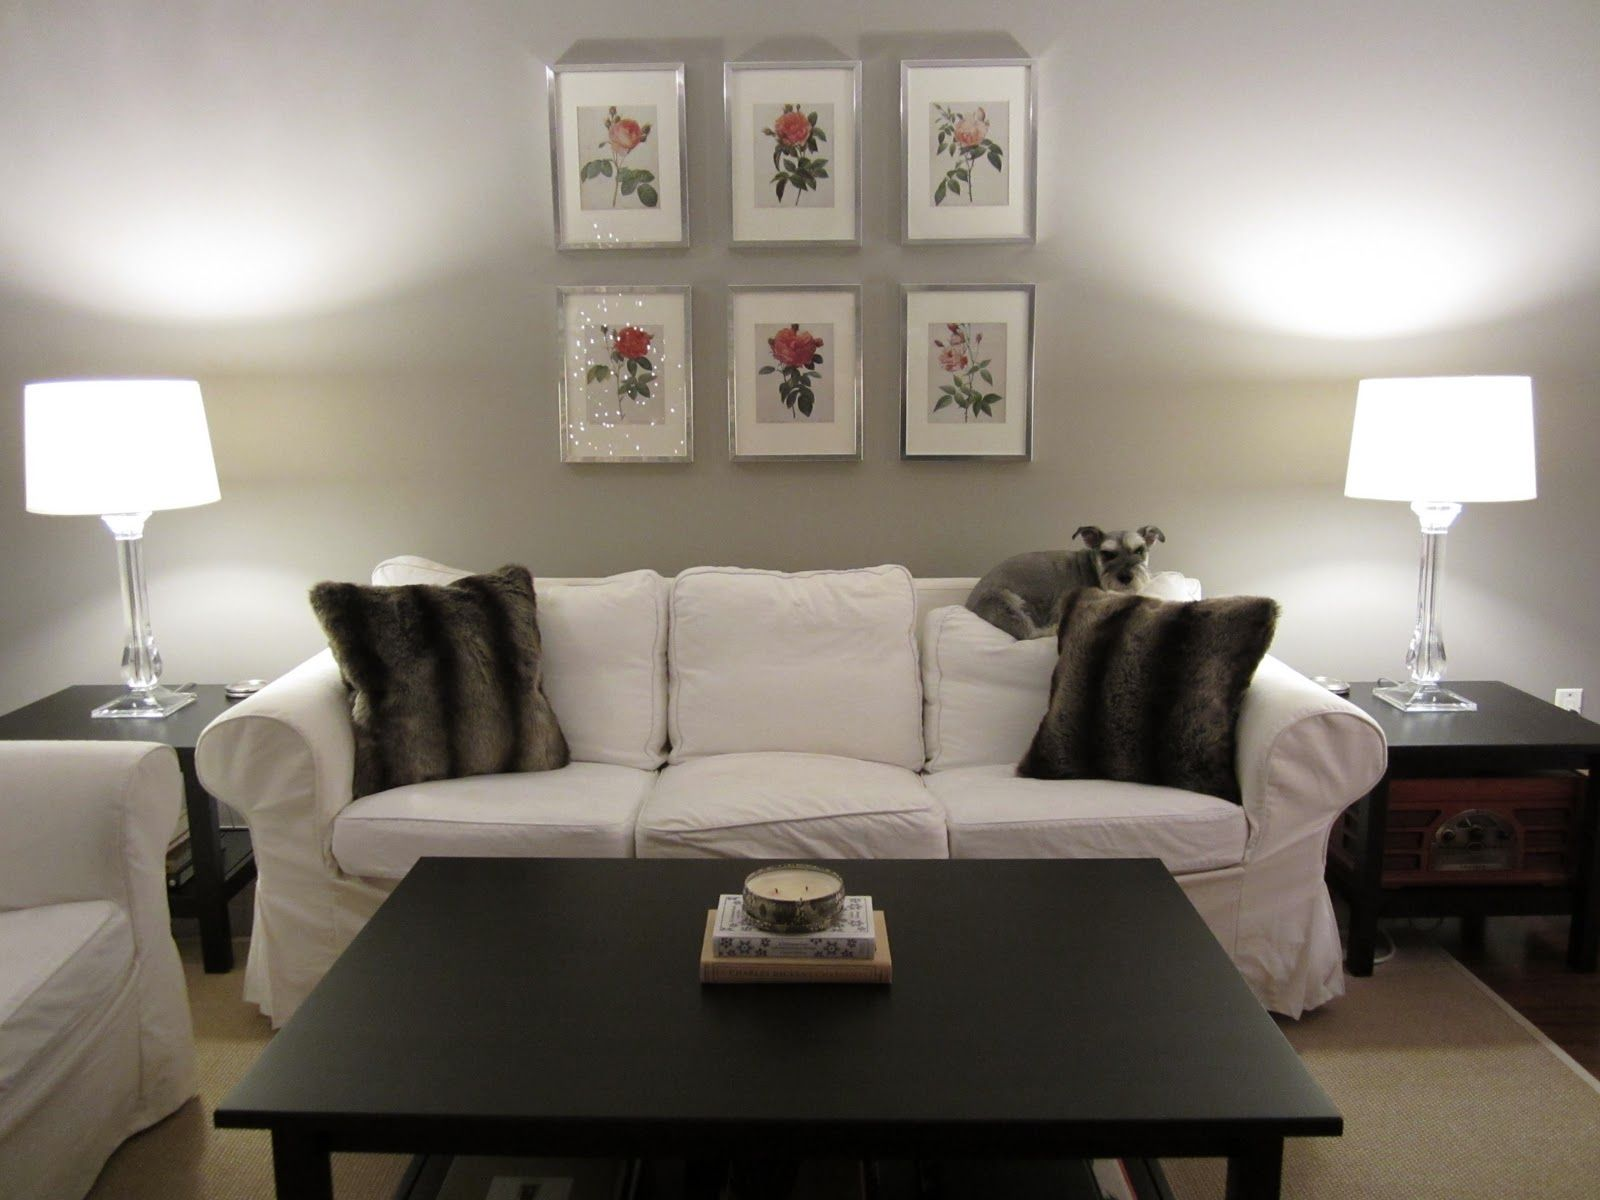 Benjamin moore silver fox paint colors pinterest - Benjamin moore paint for living room ...